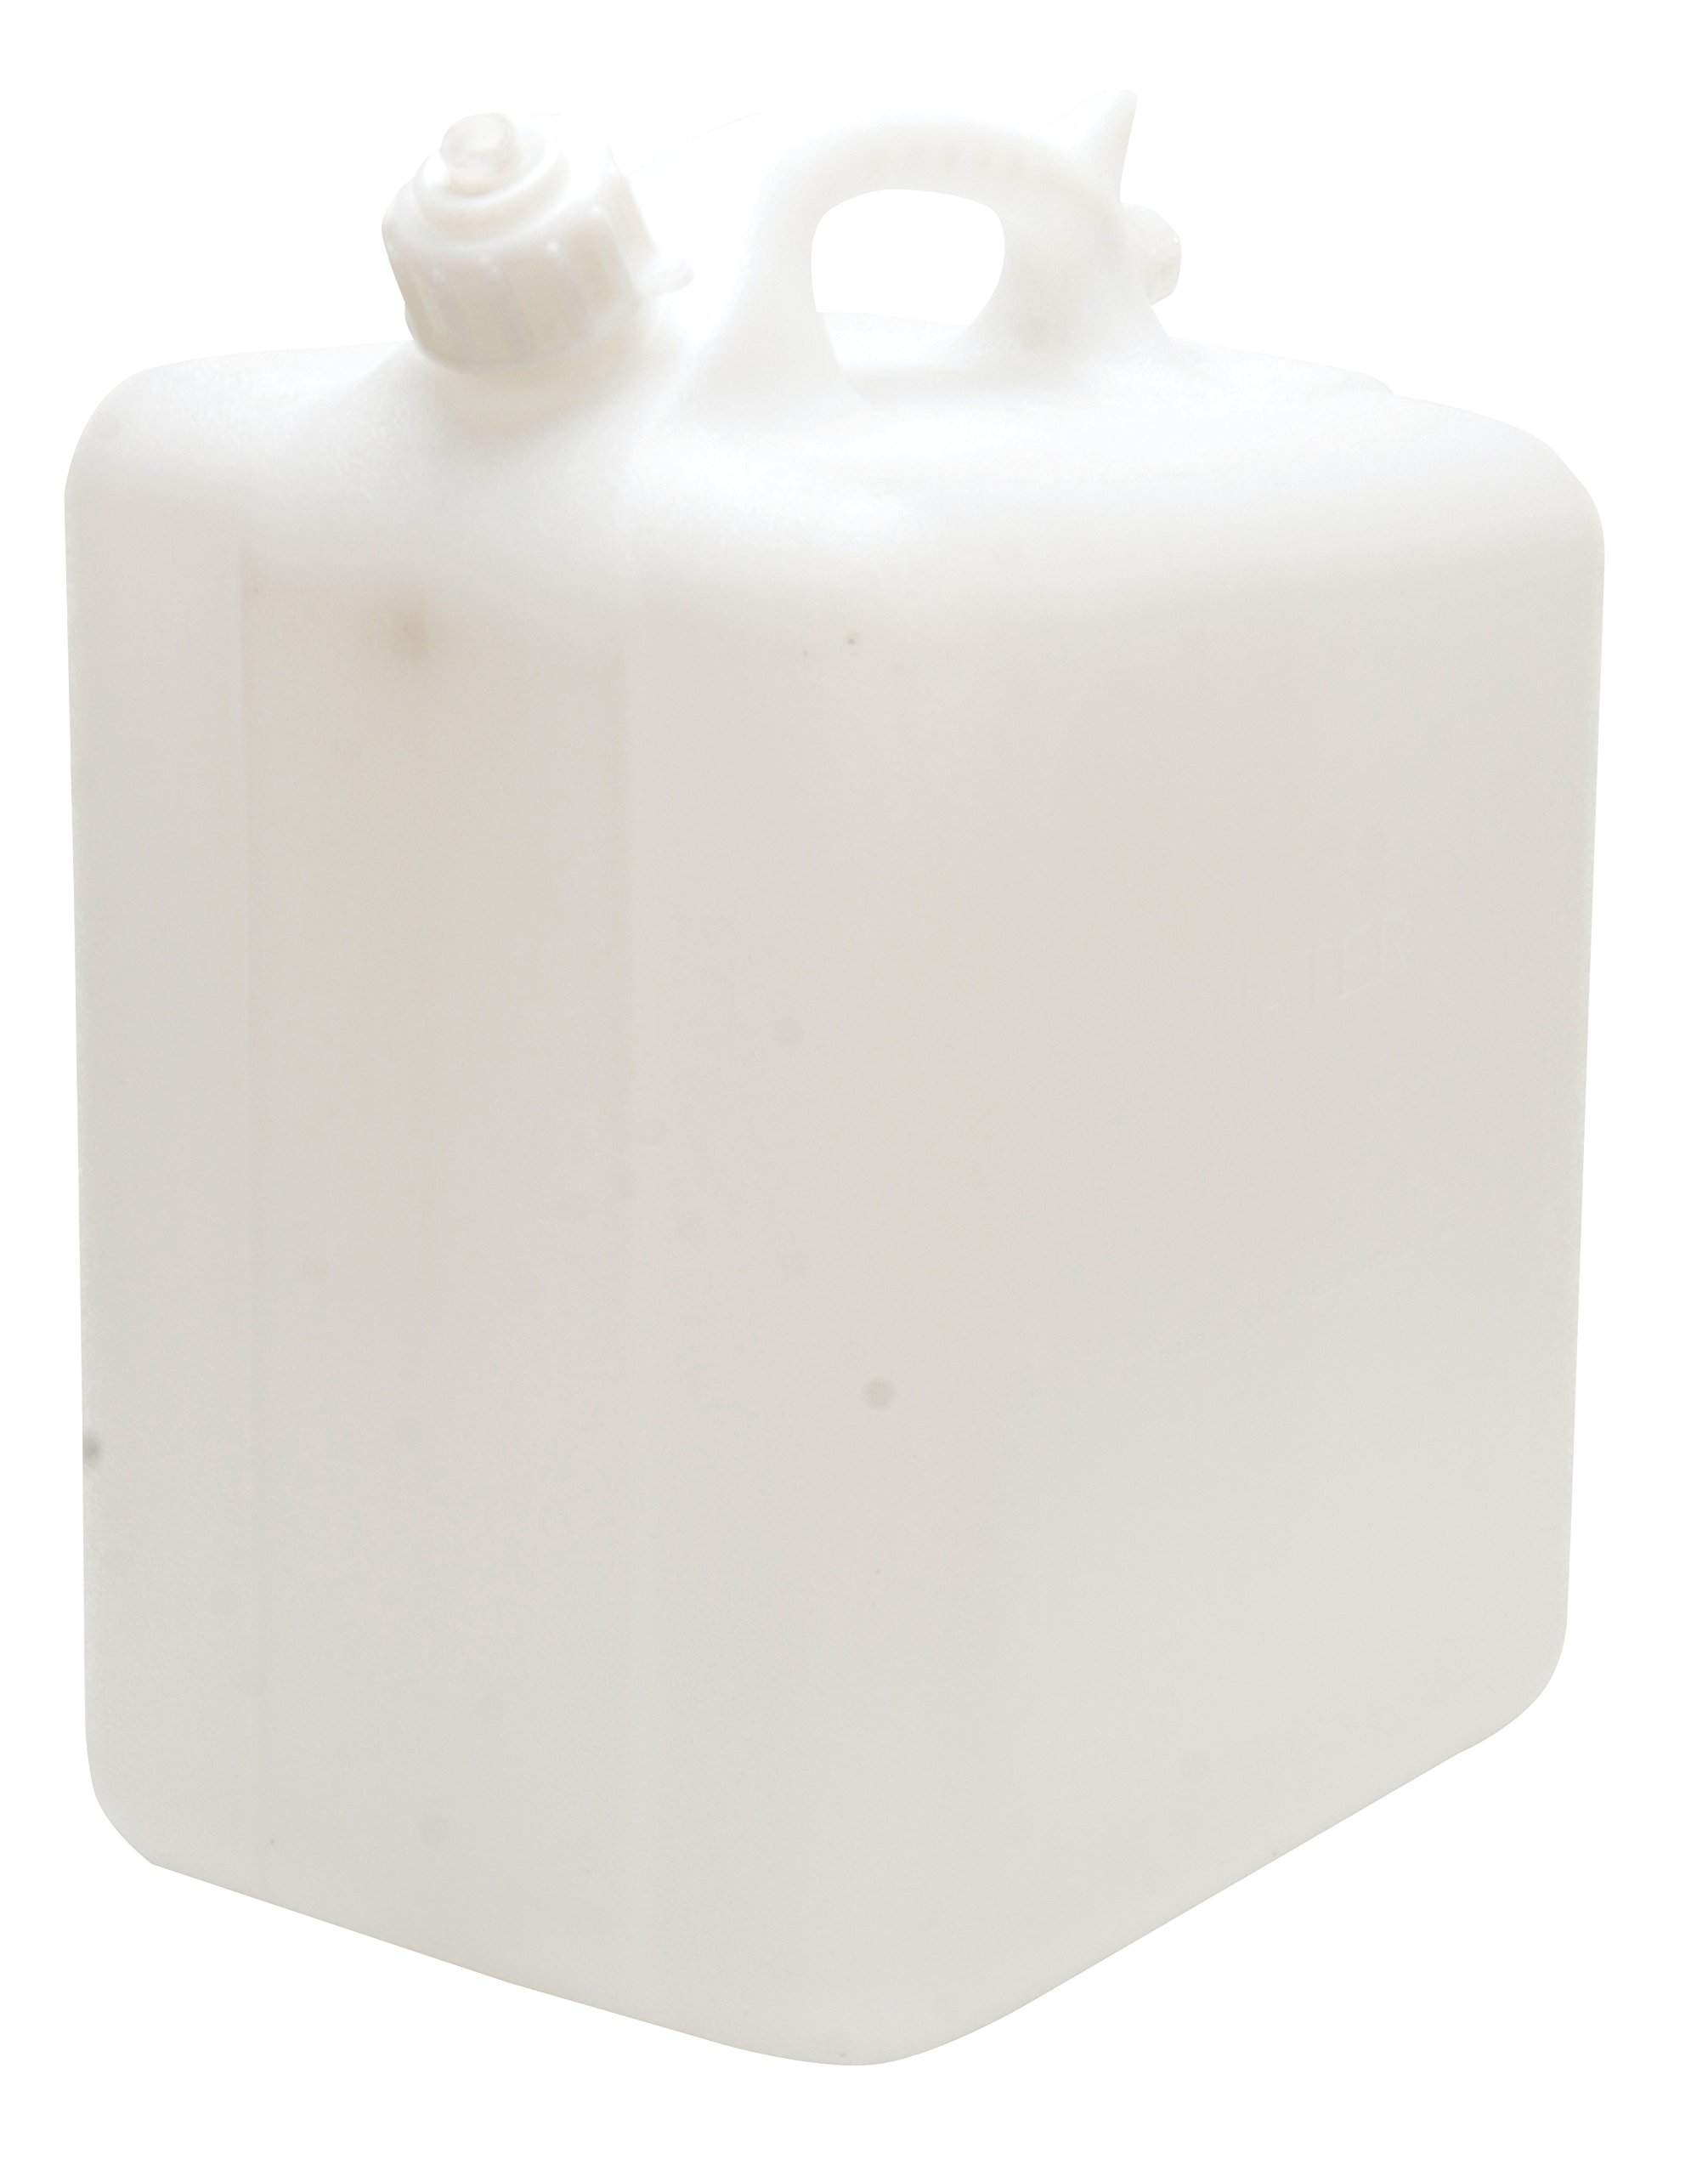 Vestil CARB-T-5 High Density Polyethylene (HDPE) Rectangular Tilt Top Carboy with Recessed Hand-Grip, 5 Gallon Capacity, Natural